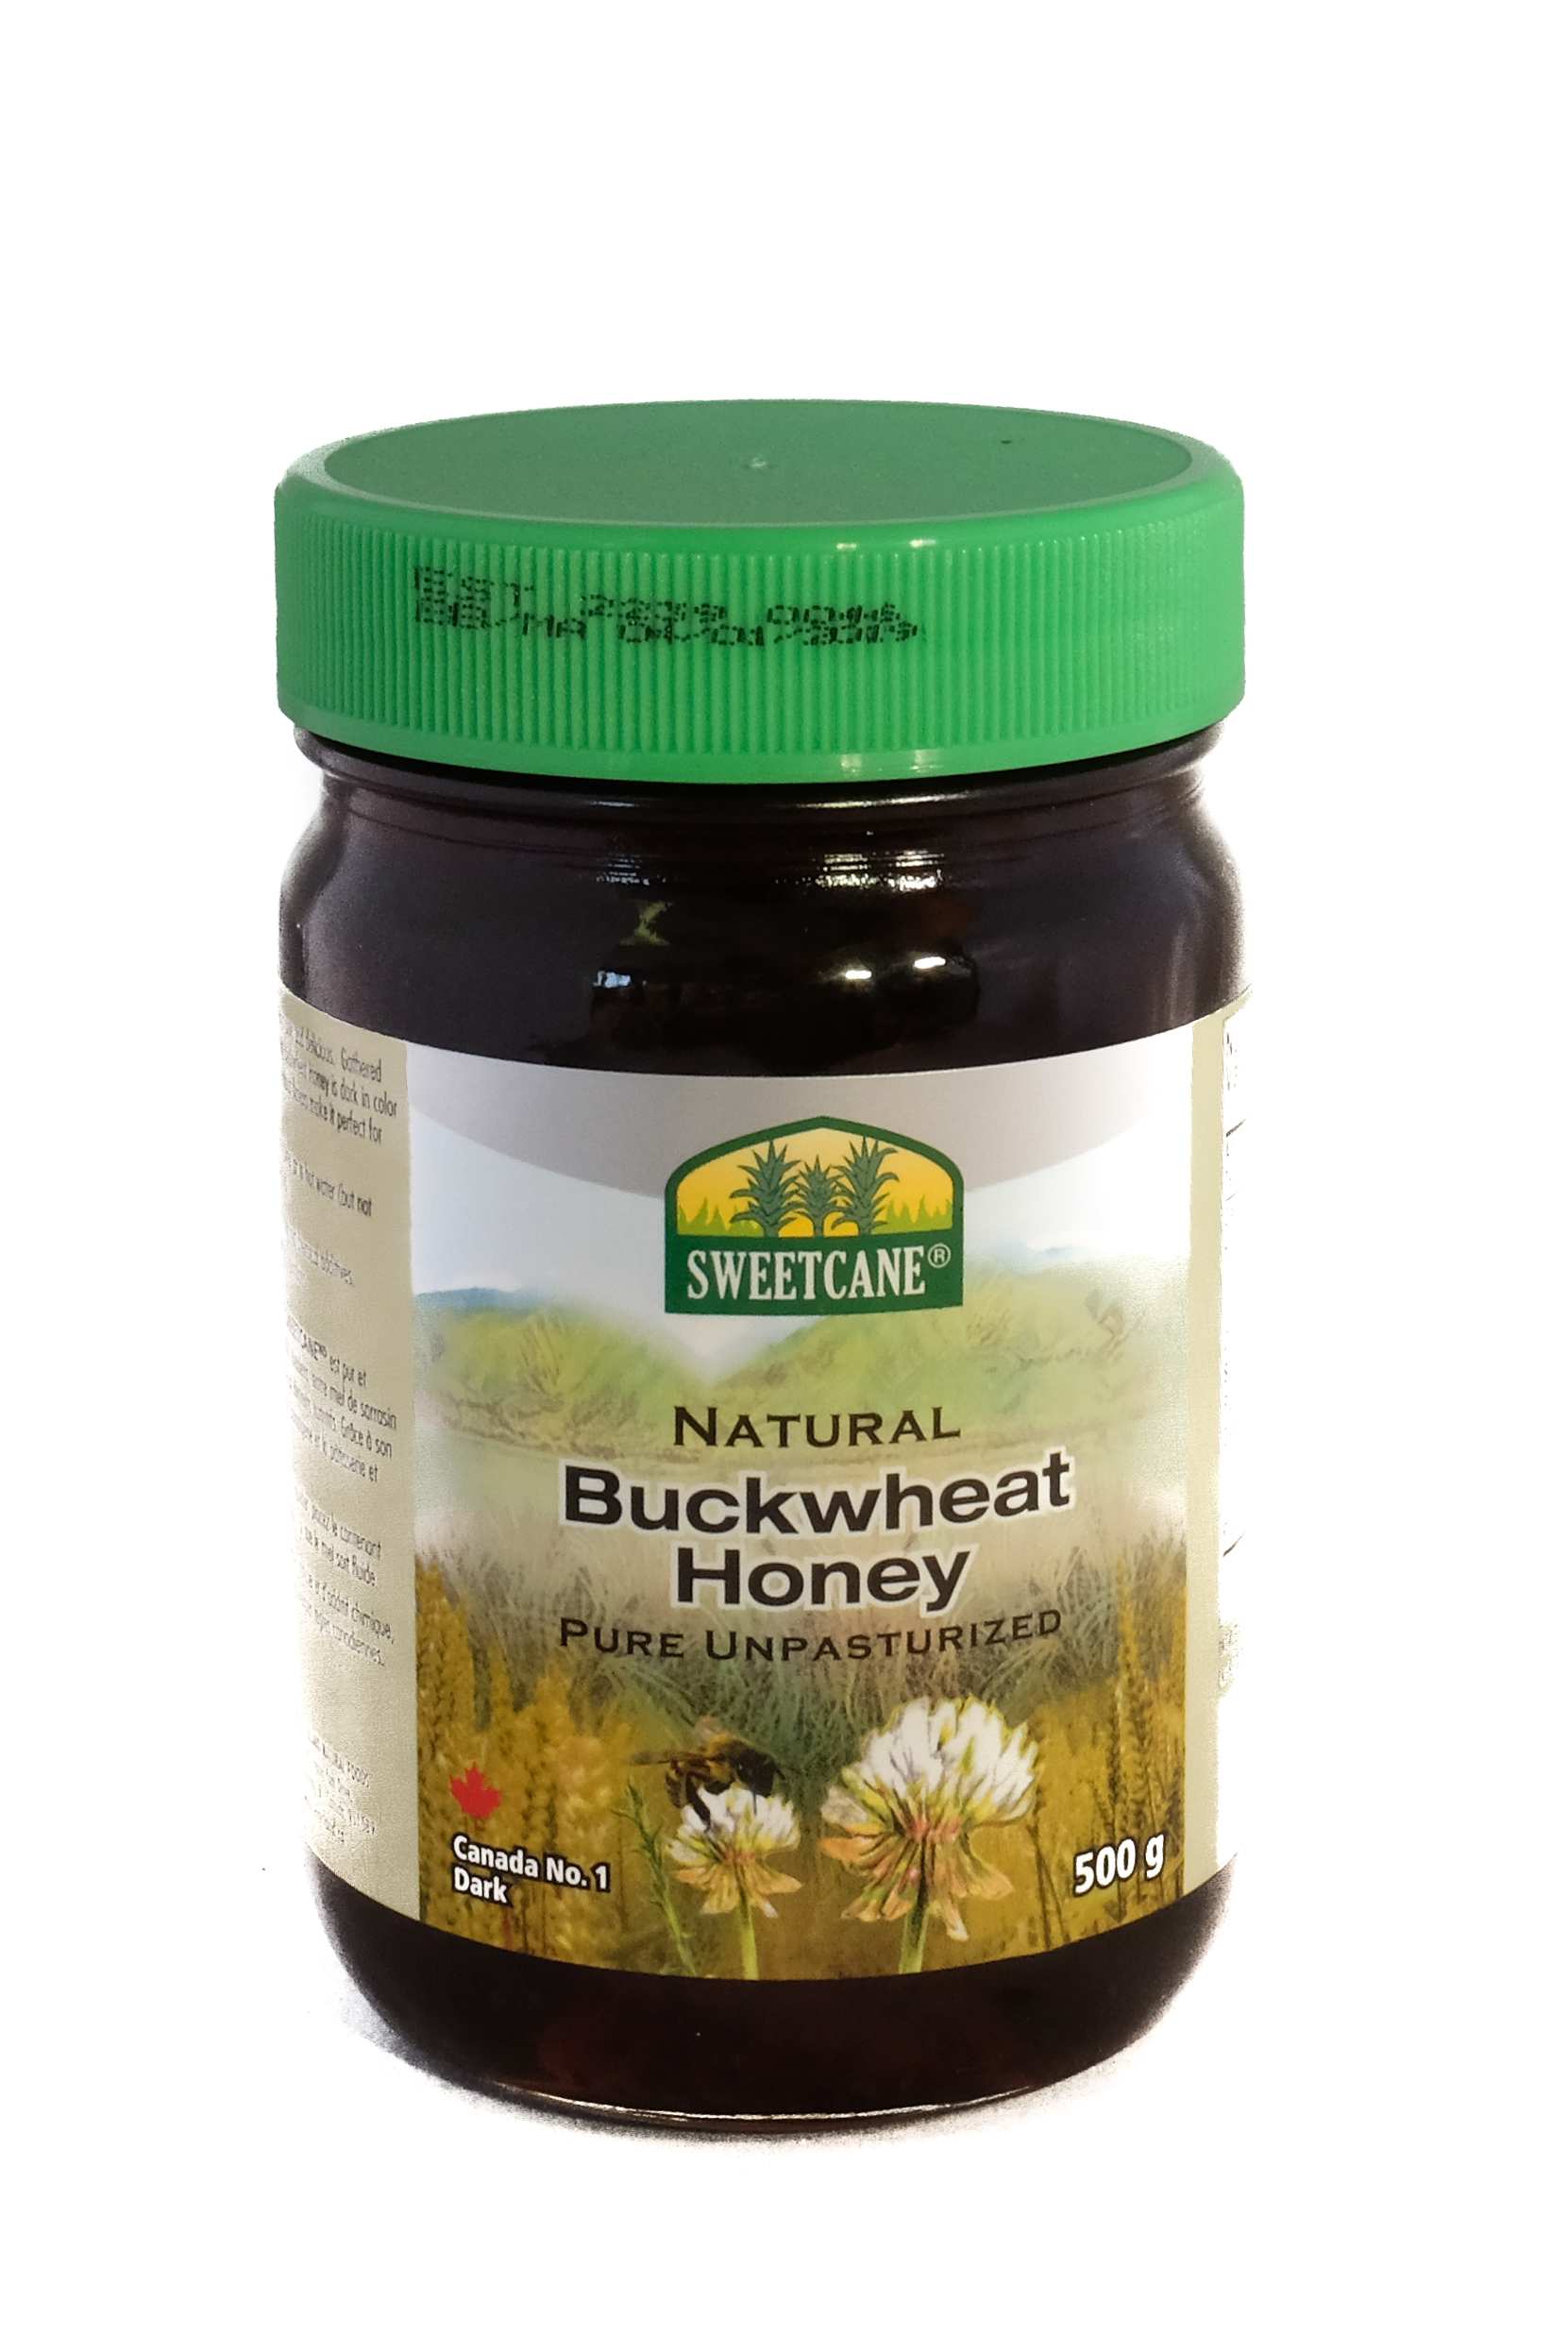 Natural Buckwheat Honey